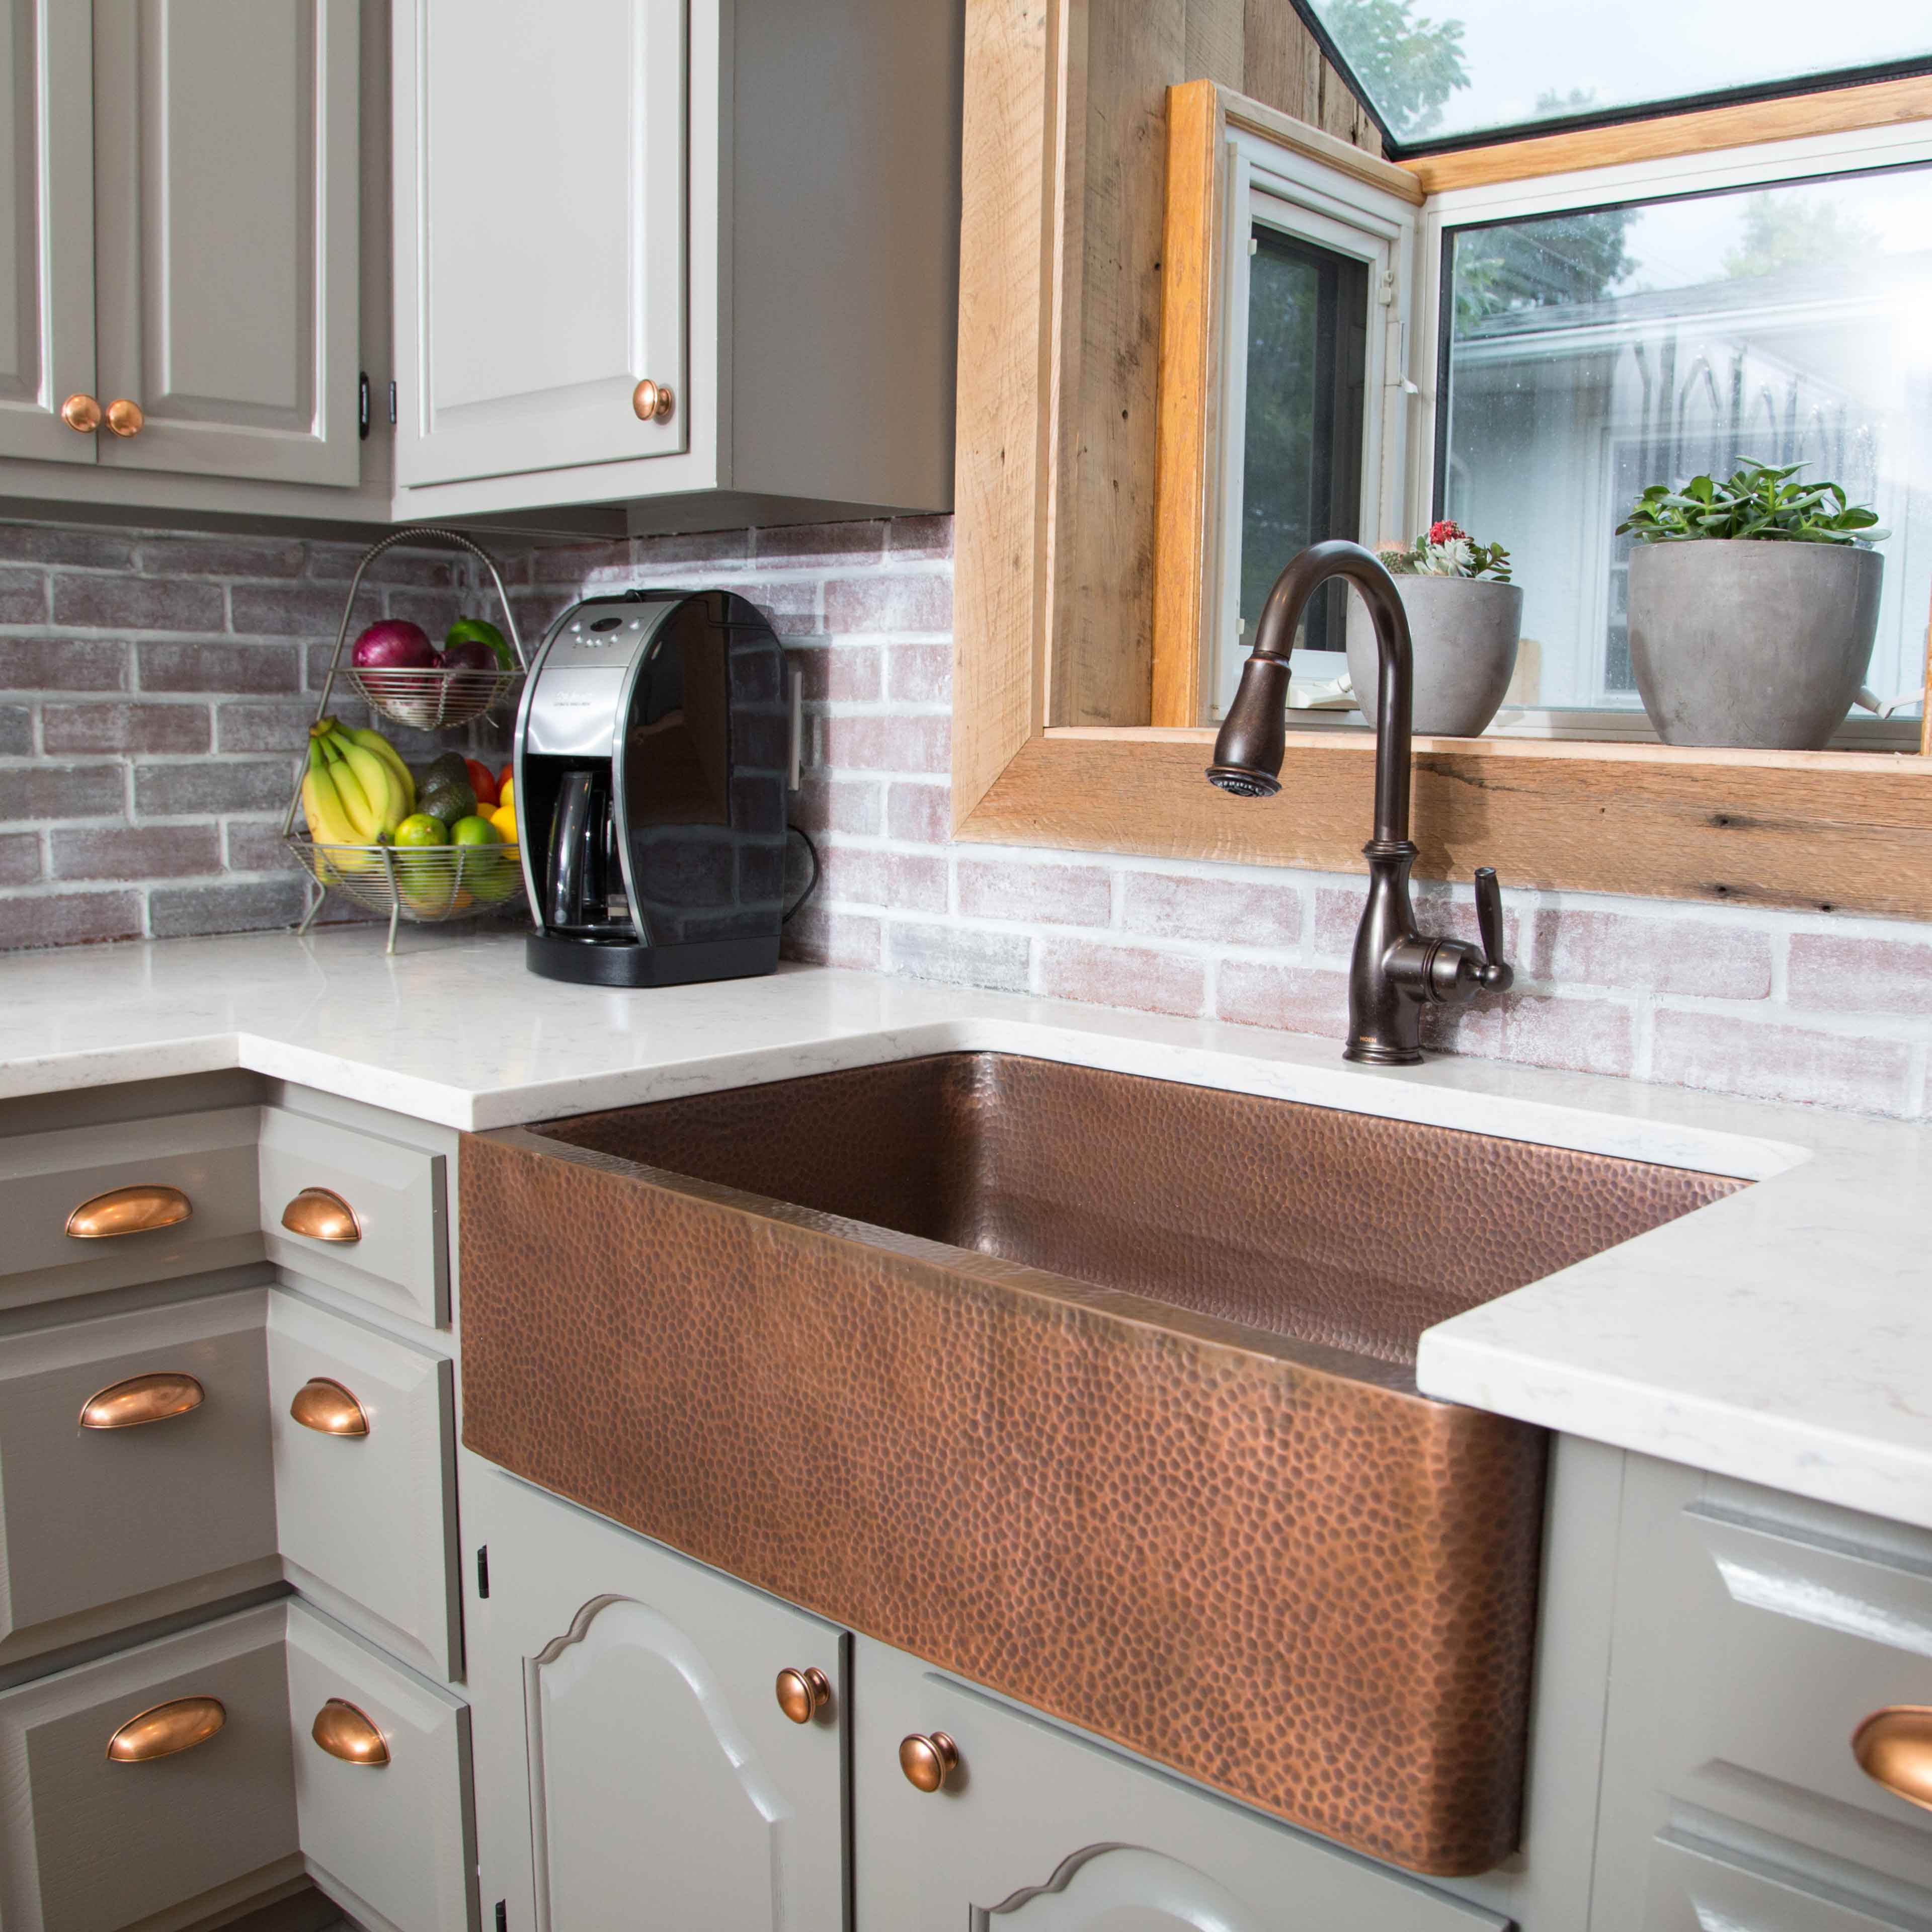 Fullsize Of Copper Farmhouse Sink